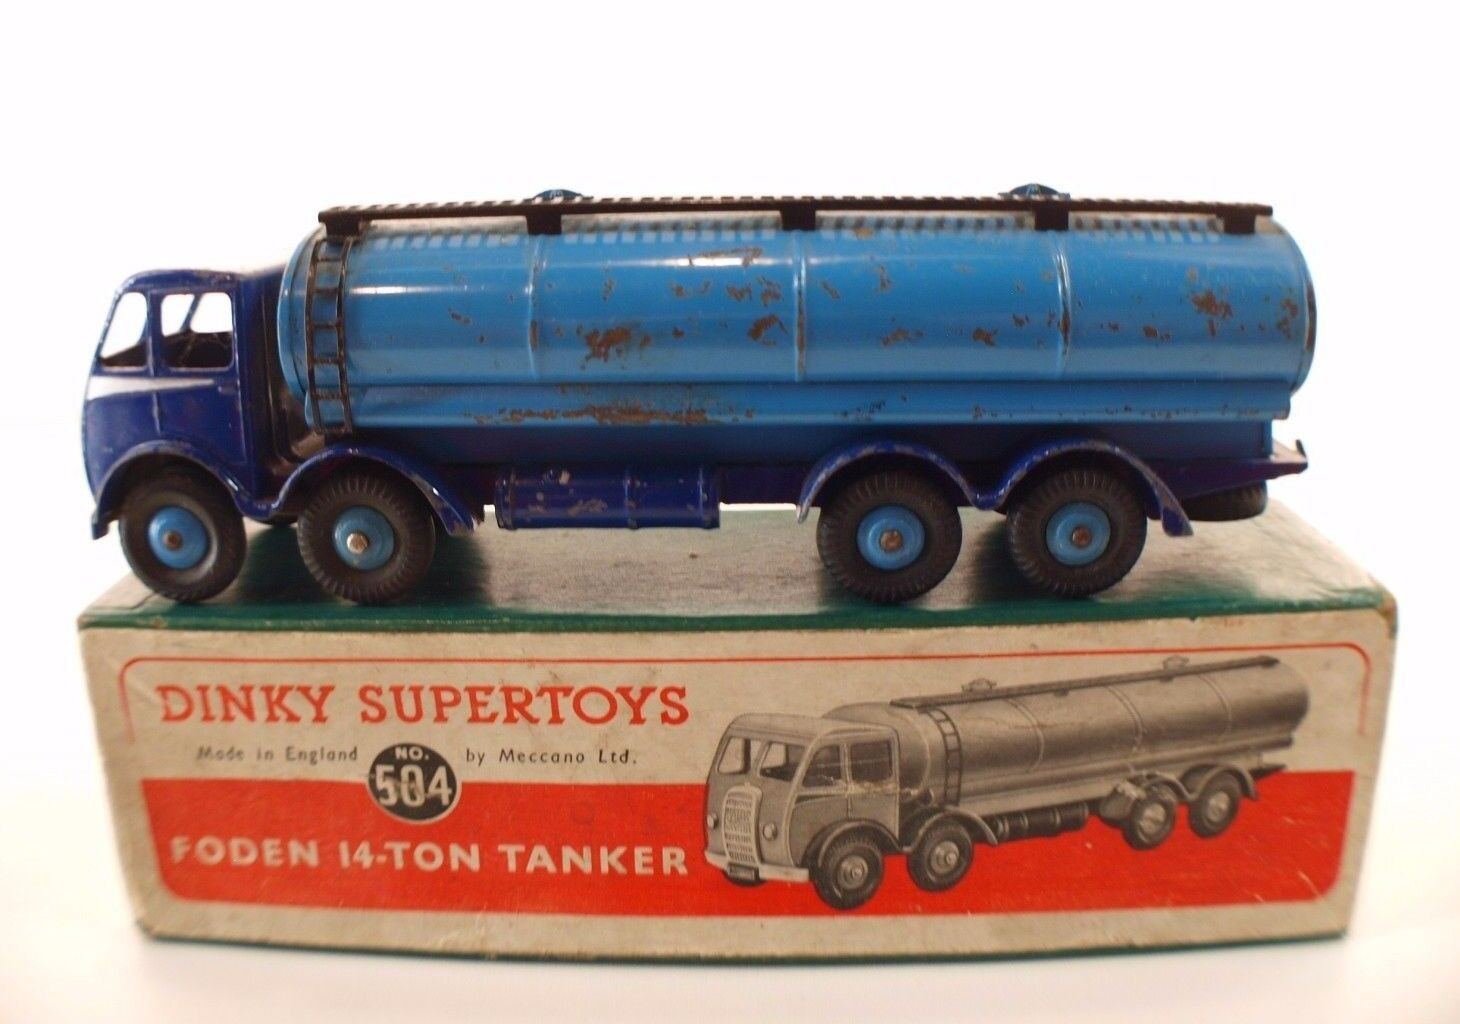 Dinky Spielzeugs GB No. 504 Foden 14-Ton Tankwagen in Box